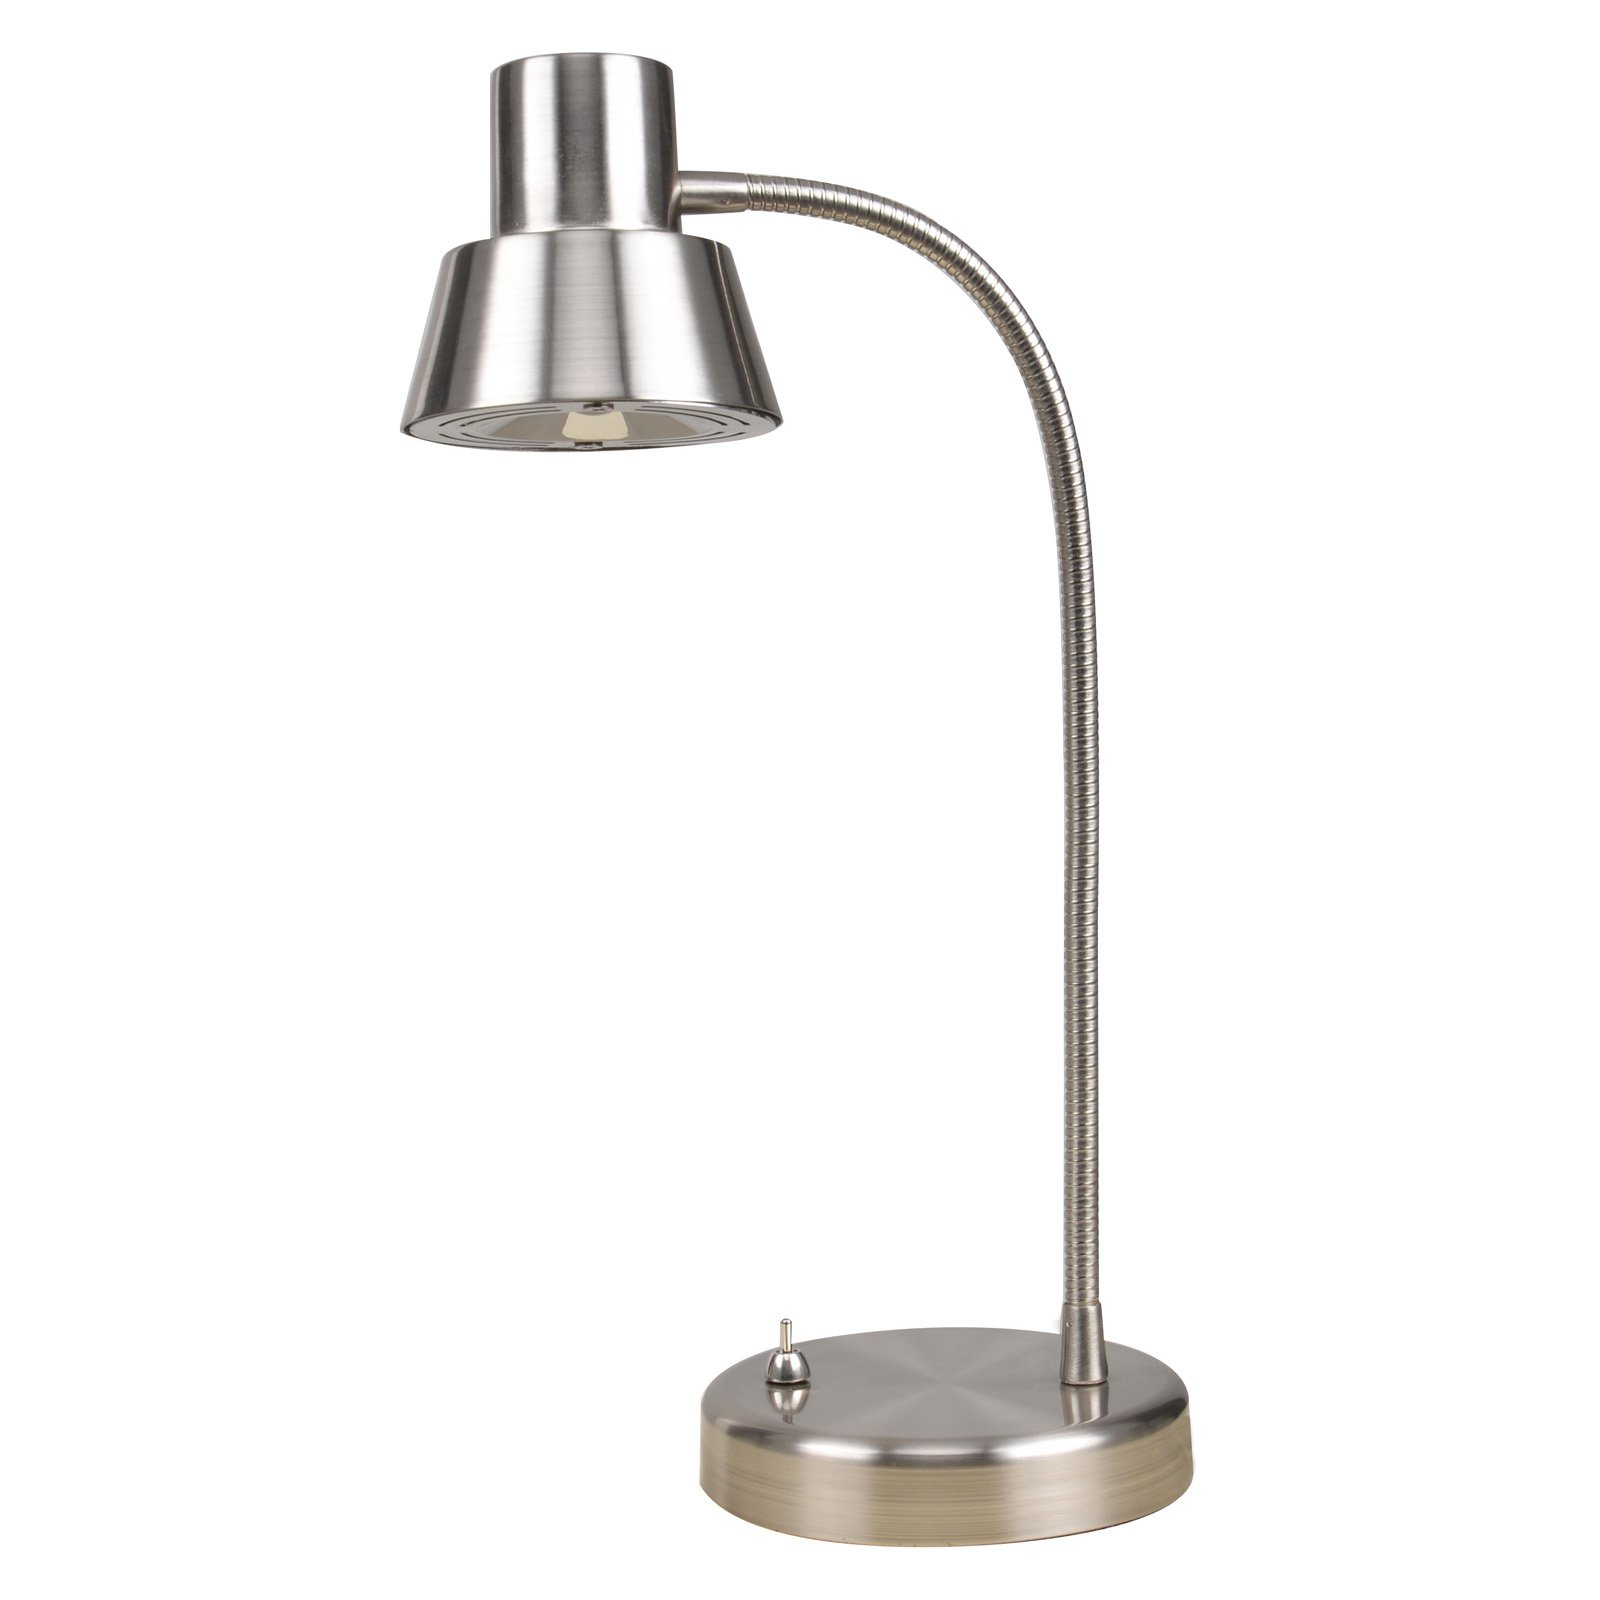 Catalina Lighting 19181 LED Desk Lamp by Evolution Lighting LLC